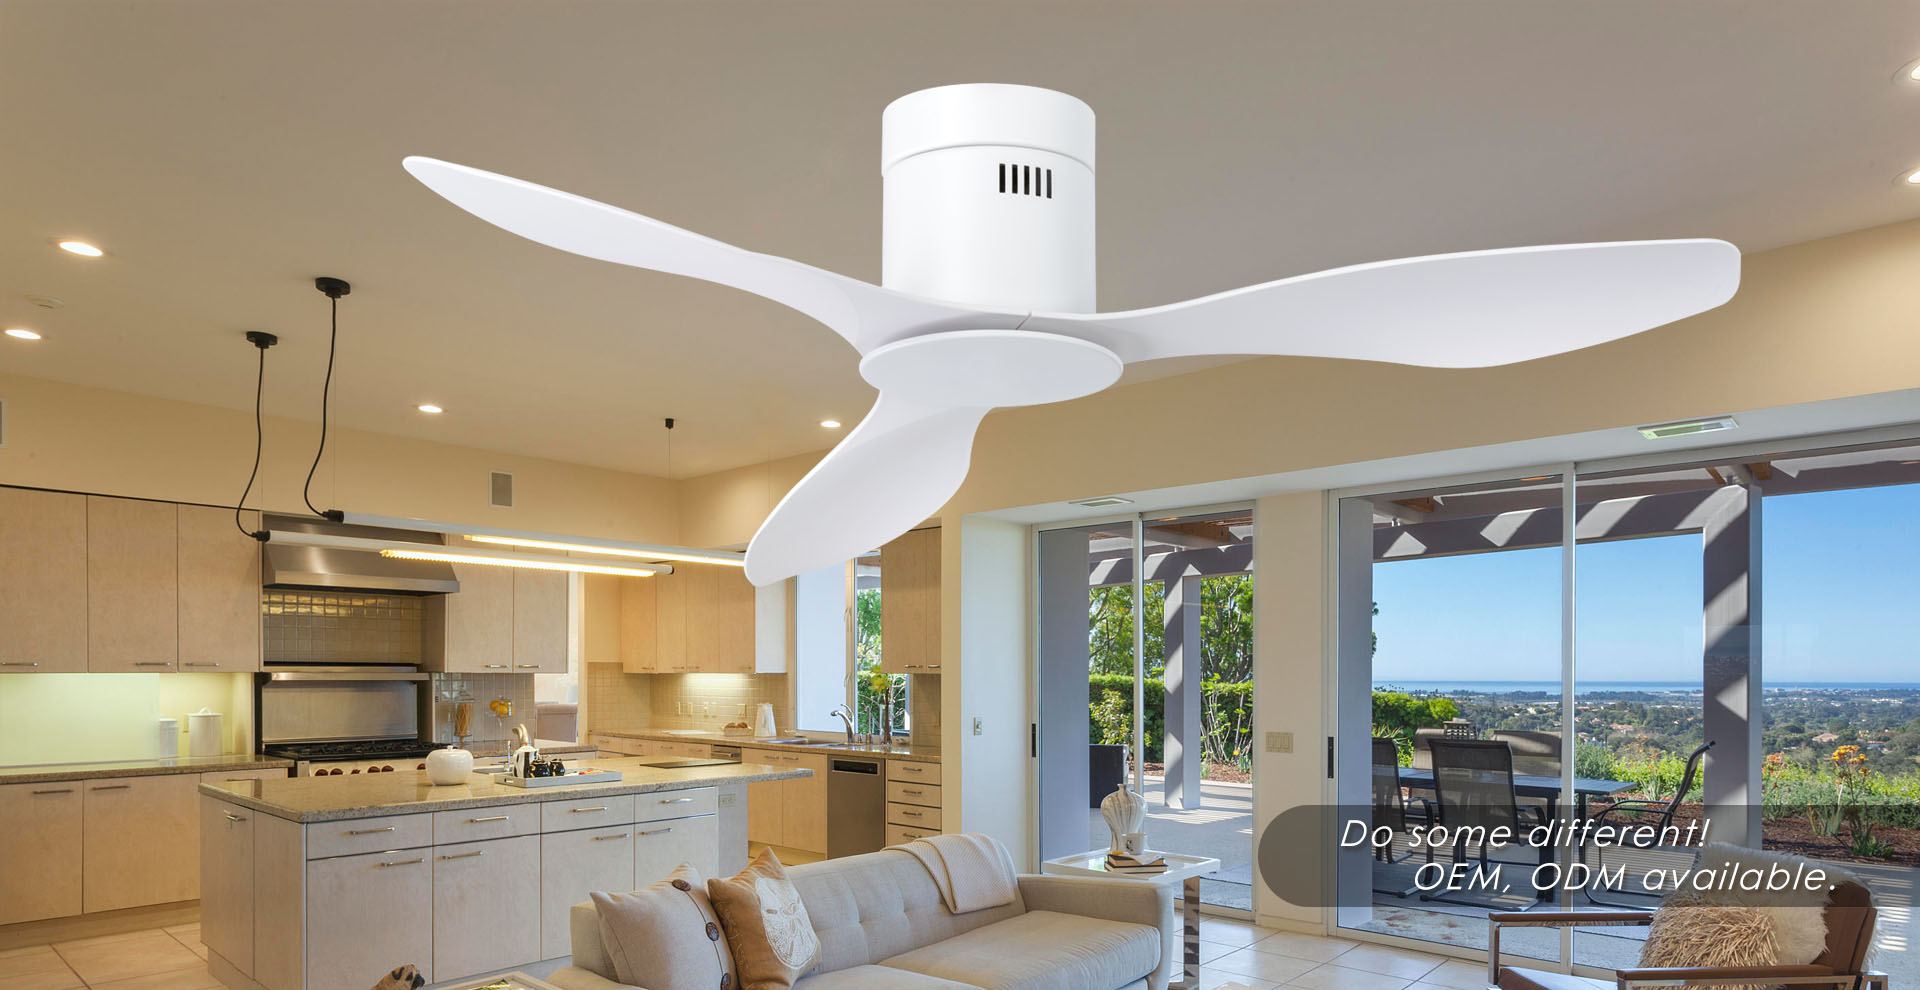 Ultra-thin ceiling fan designer